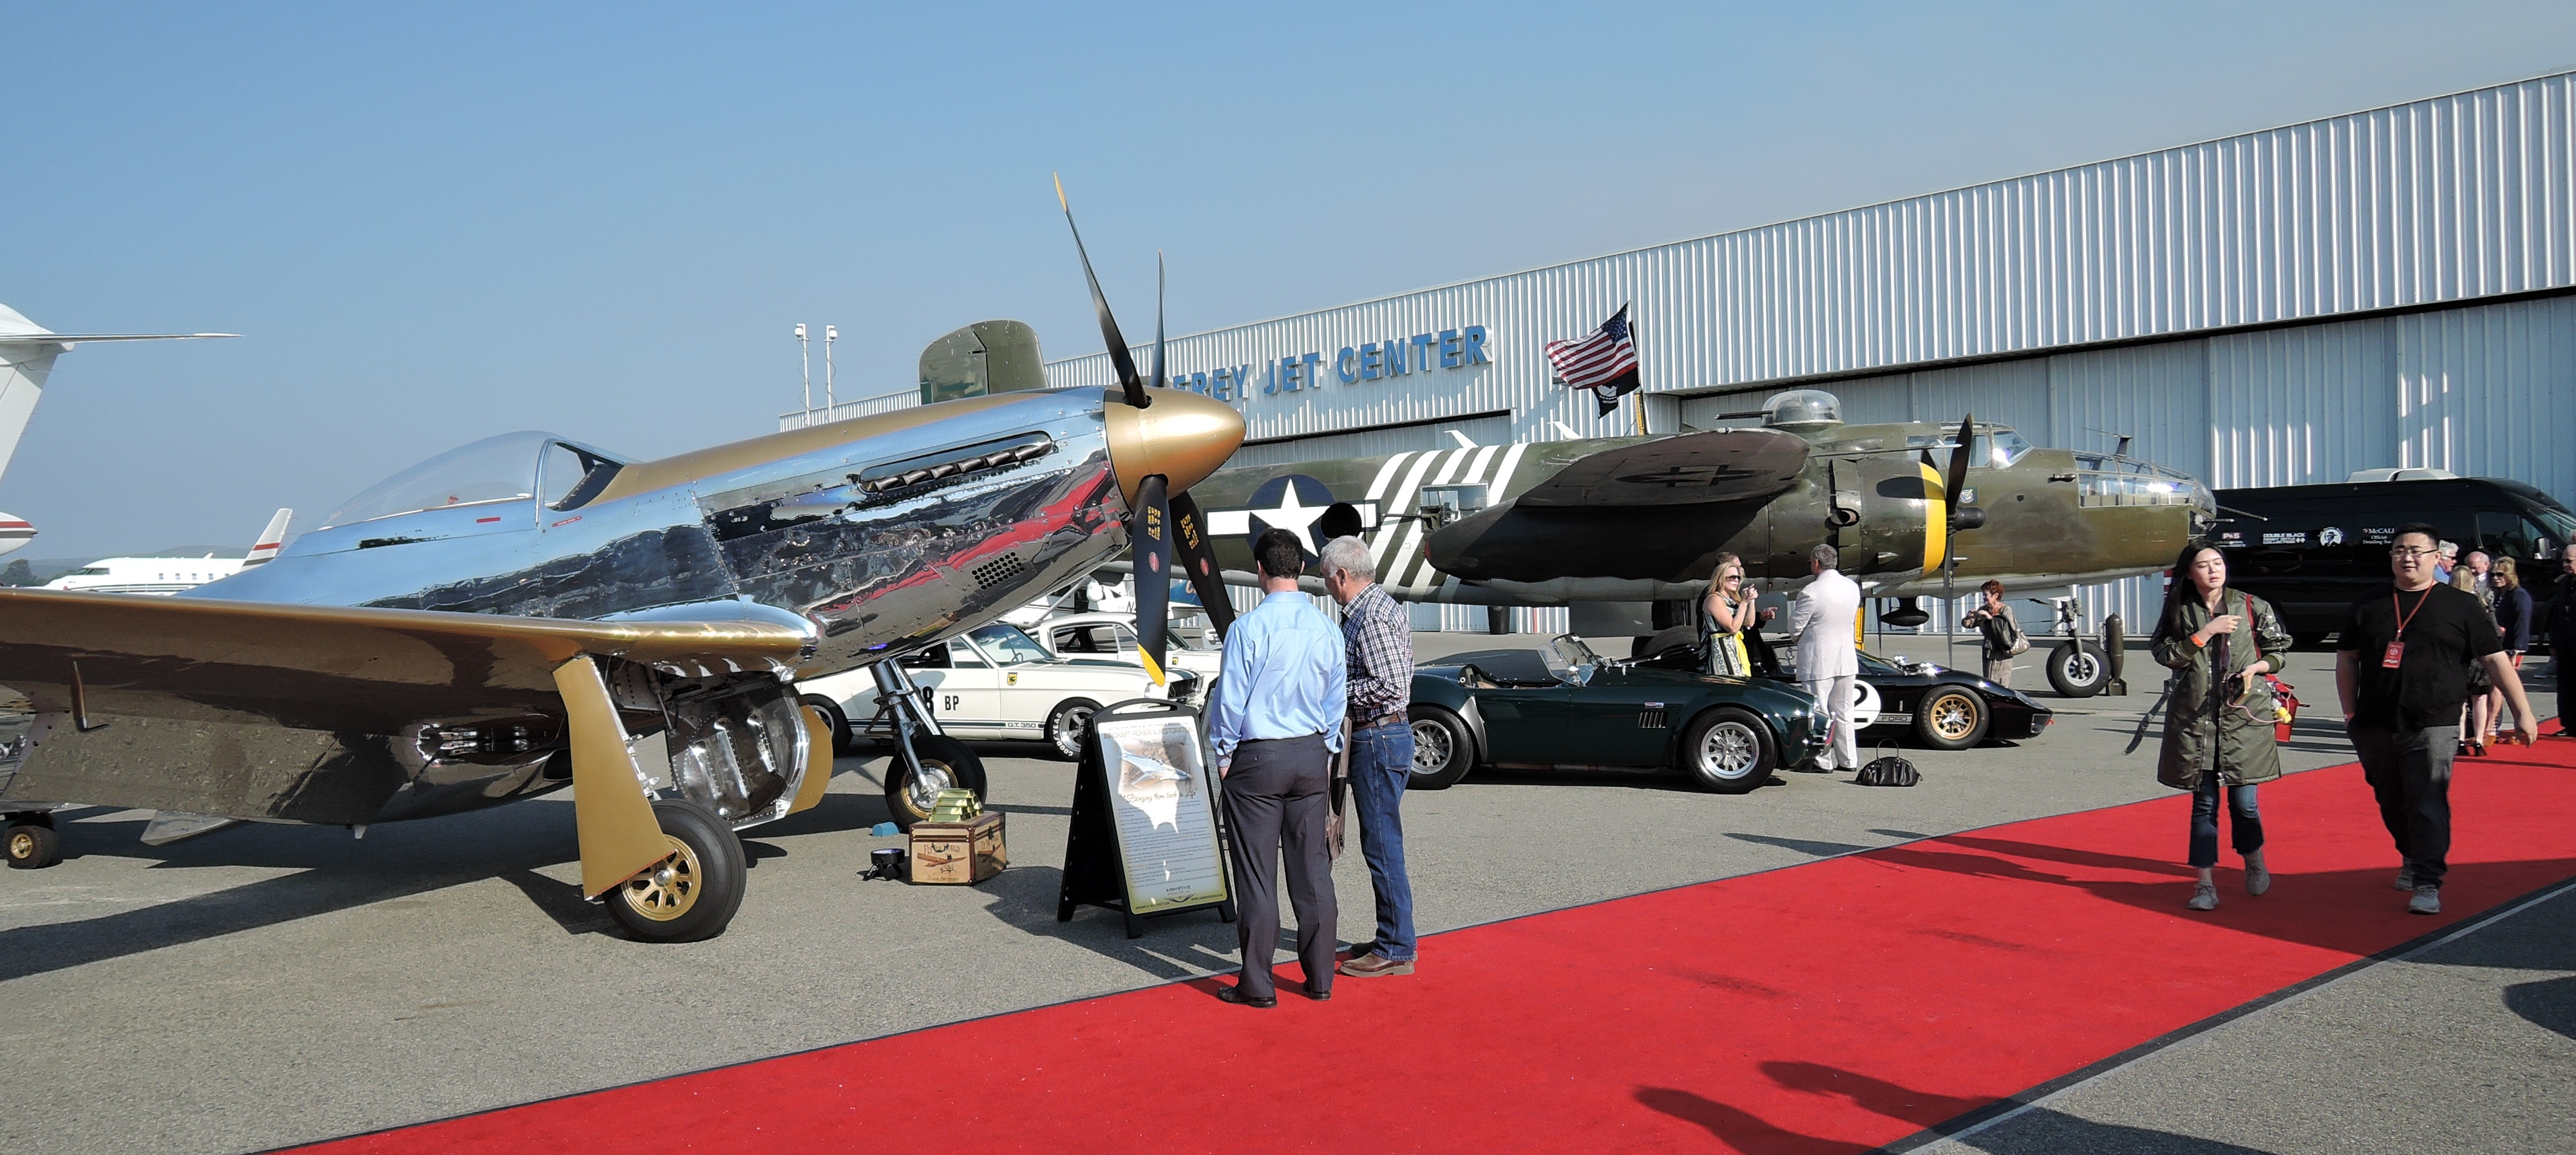 WWII planes - Monterey Jet Center - McCalls Motorworks Revival